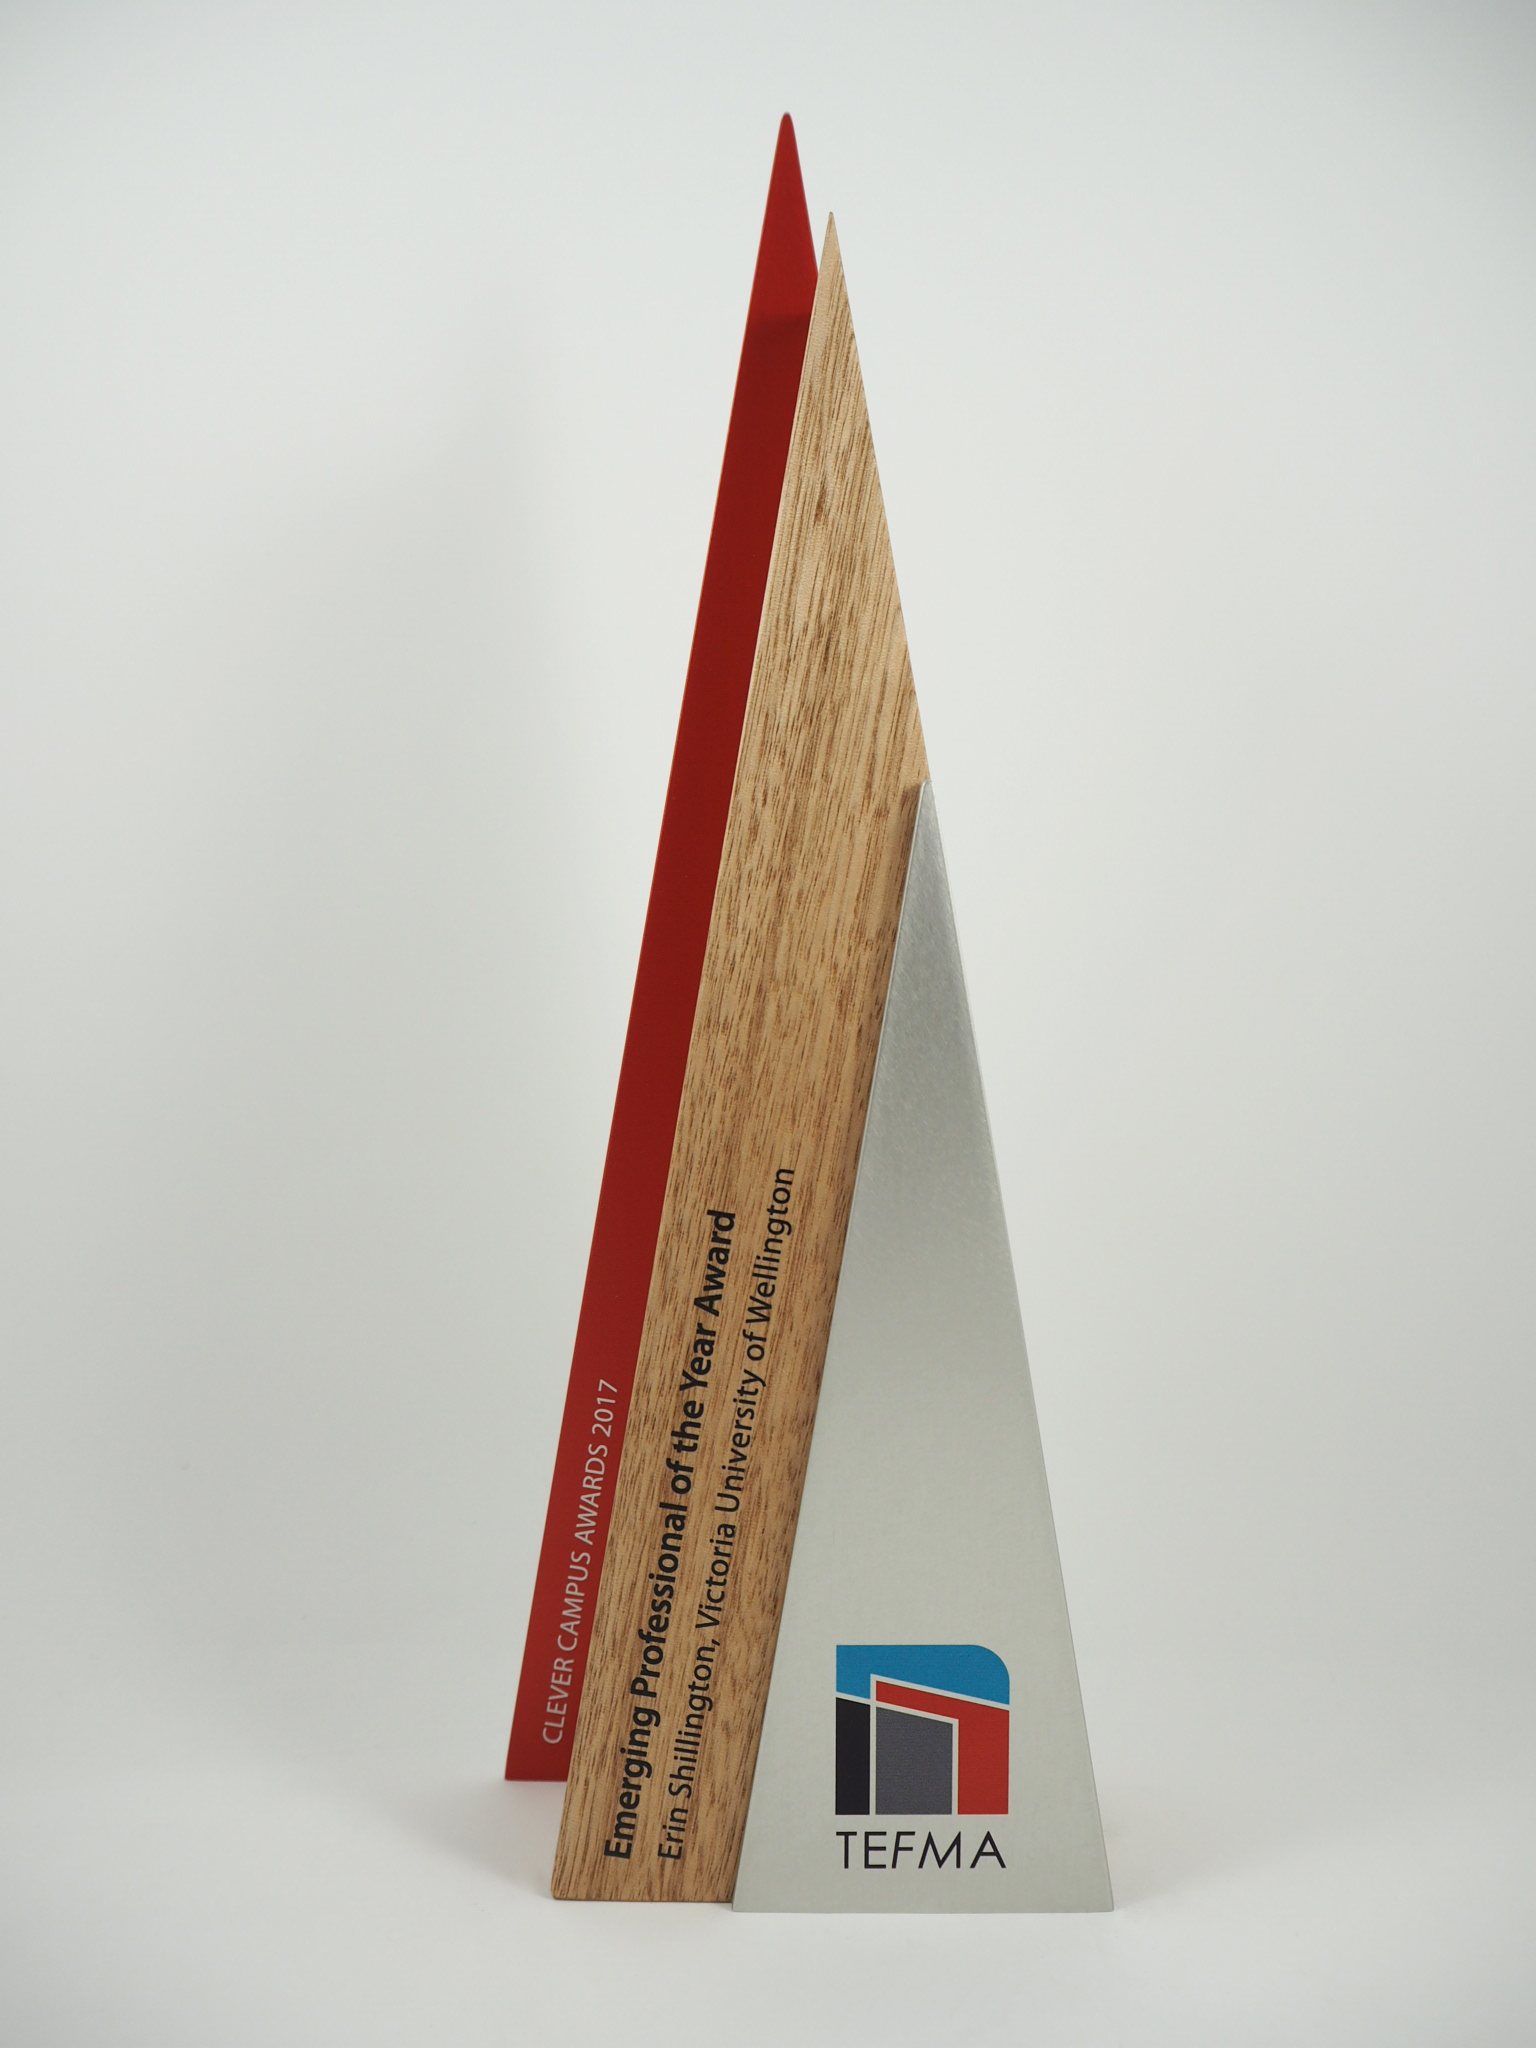 tefma-awards-timber-eco-aluminium-trophy-02.jpg